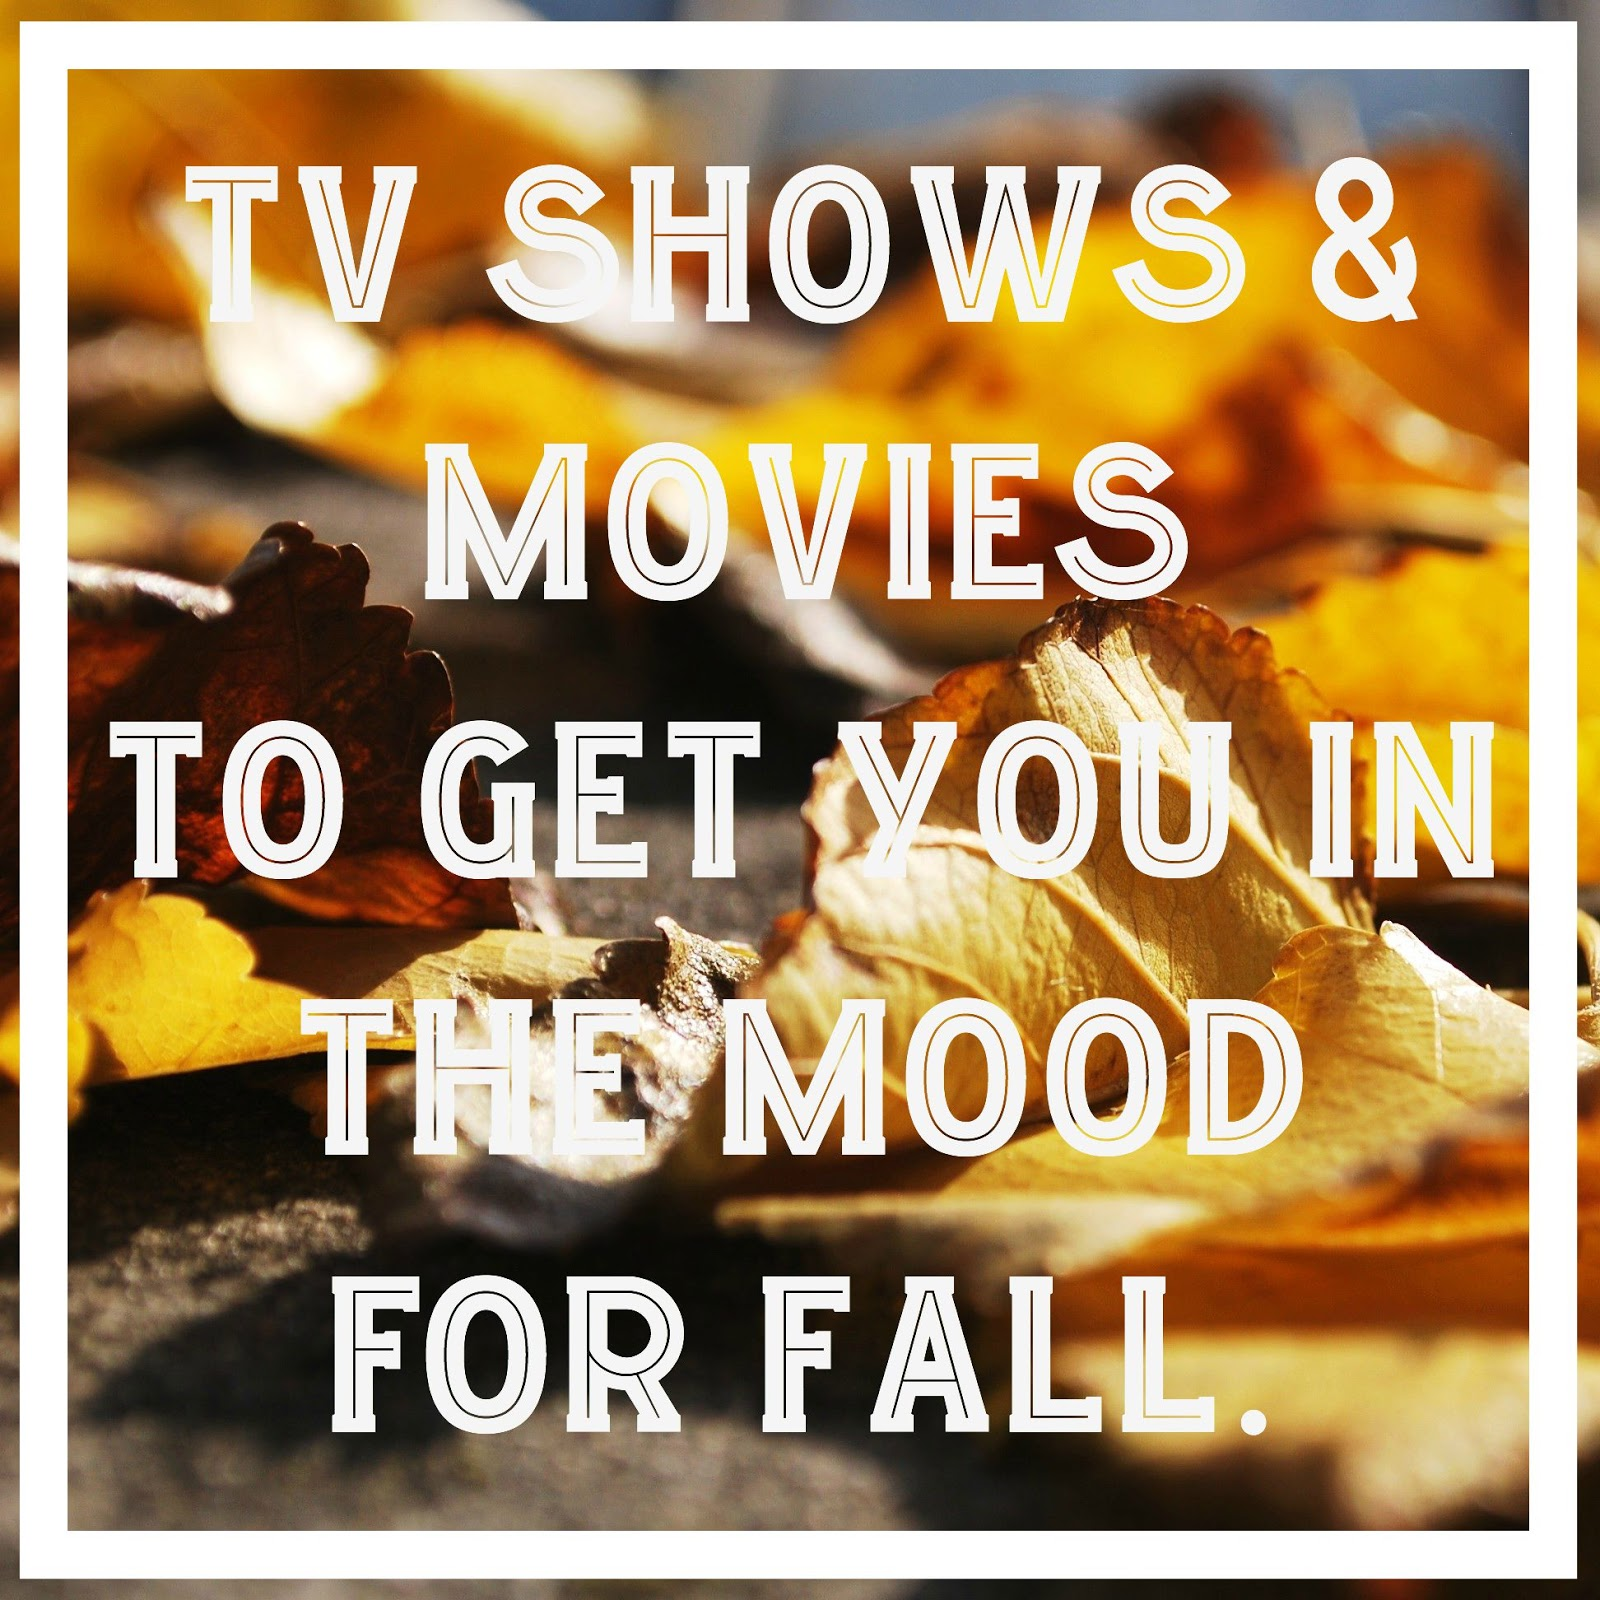 TV Shows & Movies To Get You In The Mood For Fall.